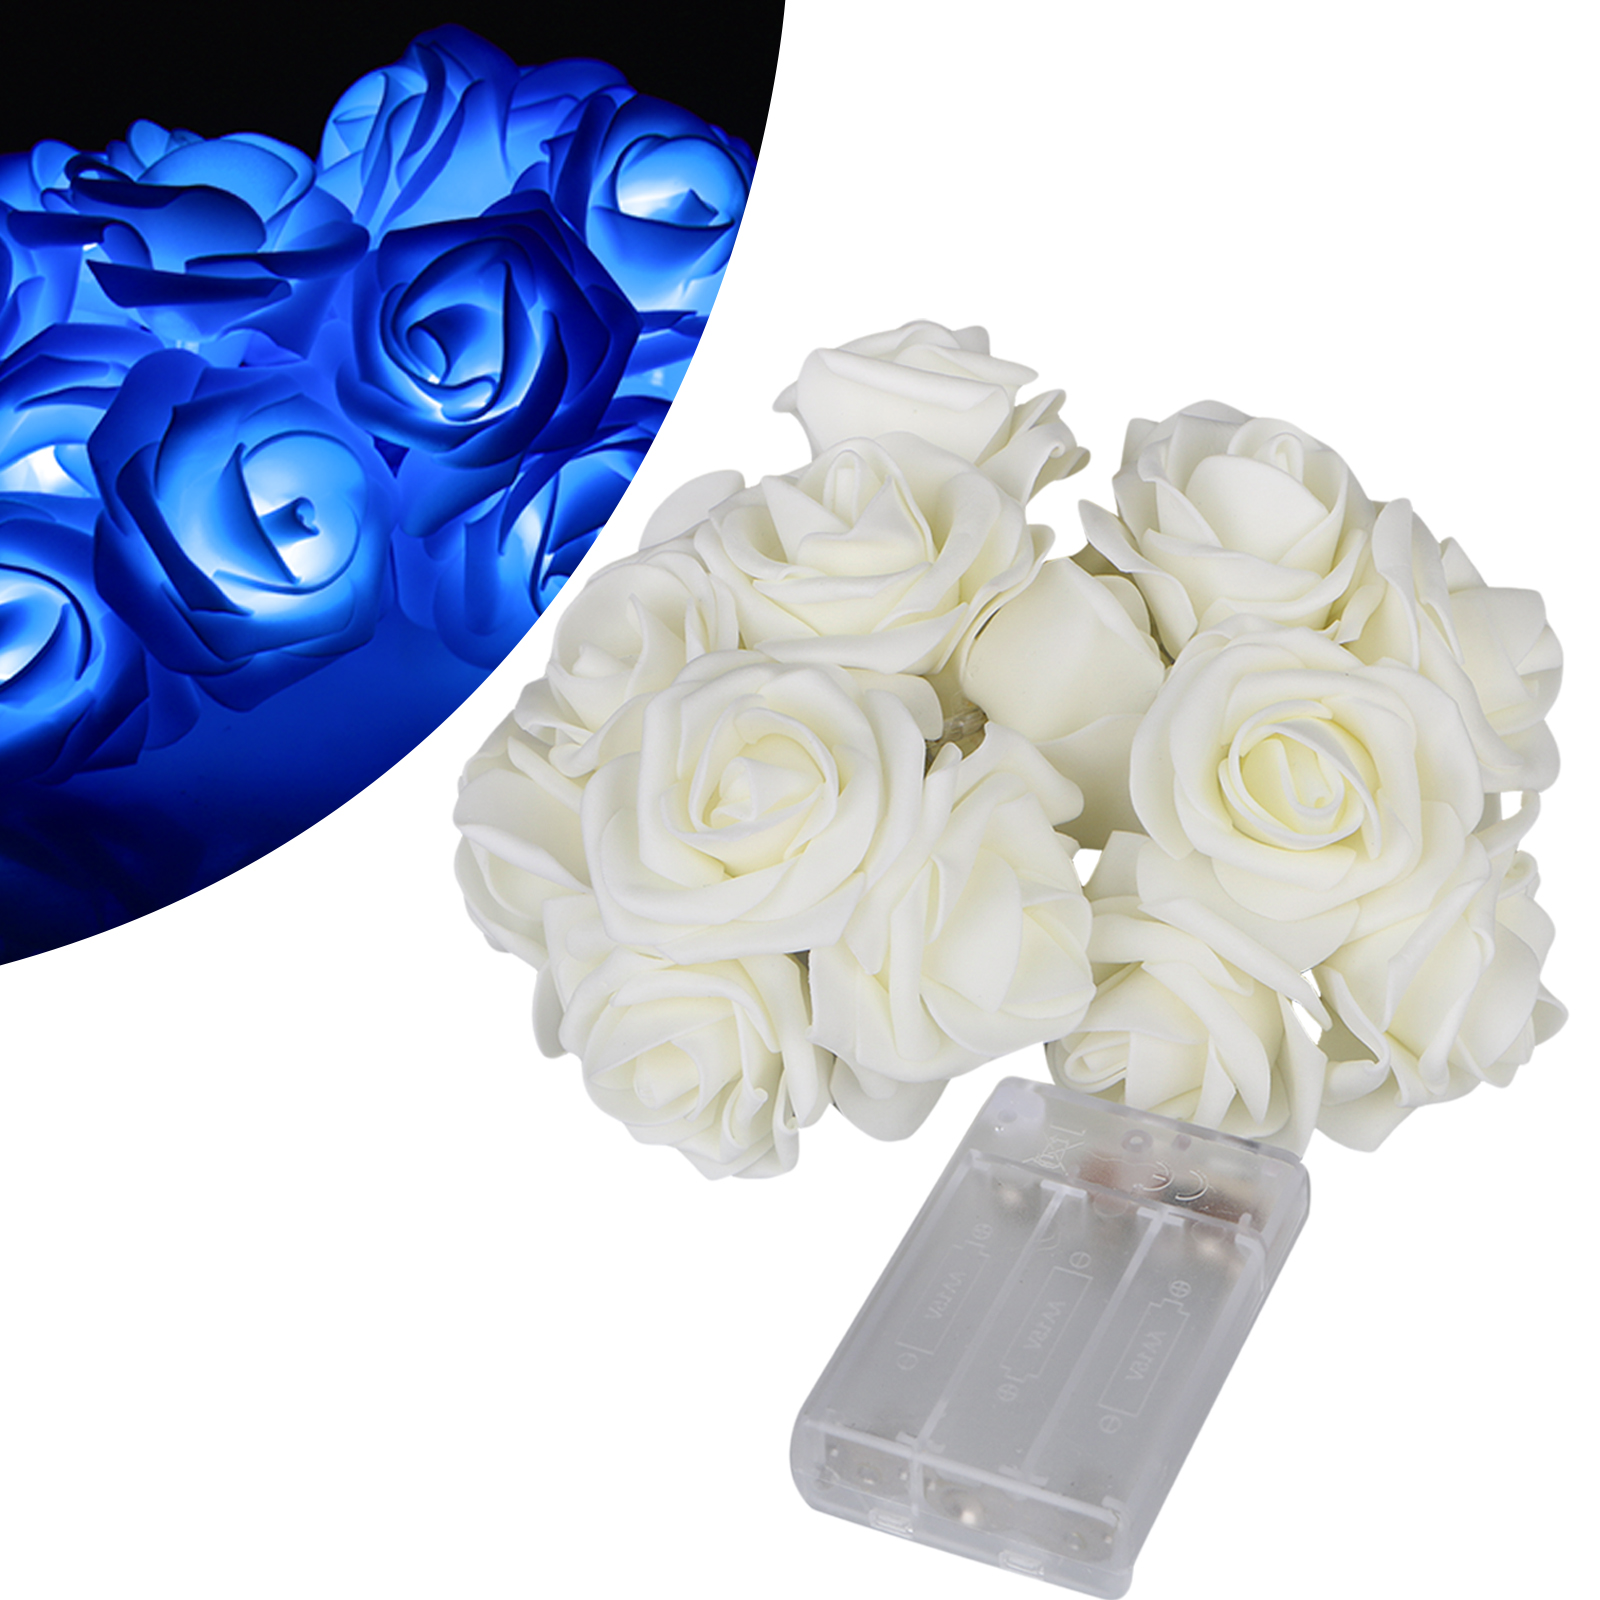 20 LED Battery Operated Rose Flower String Lights Wedding Garden Christmas Decor Decoration